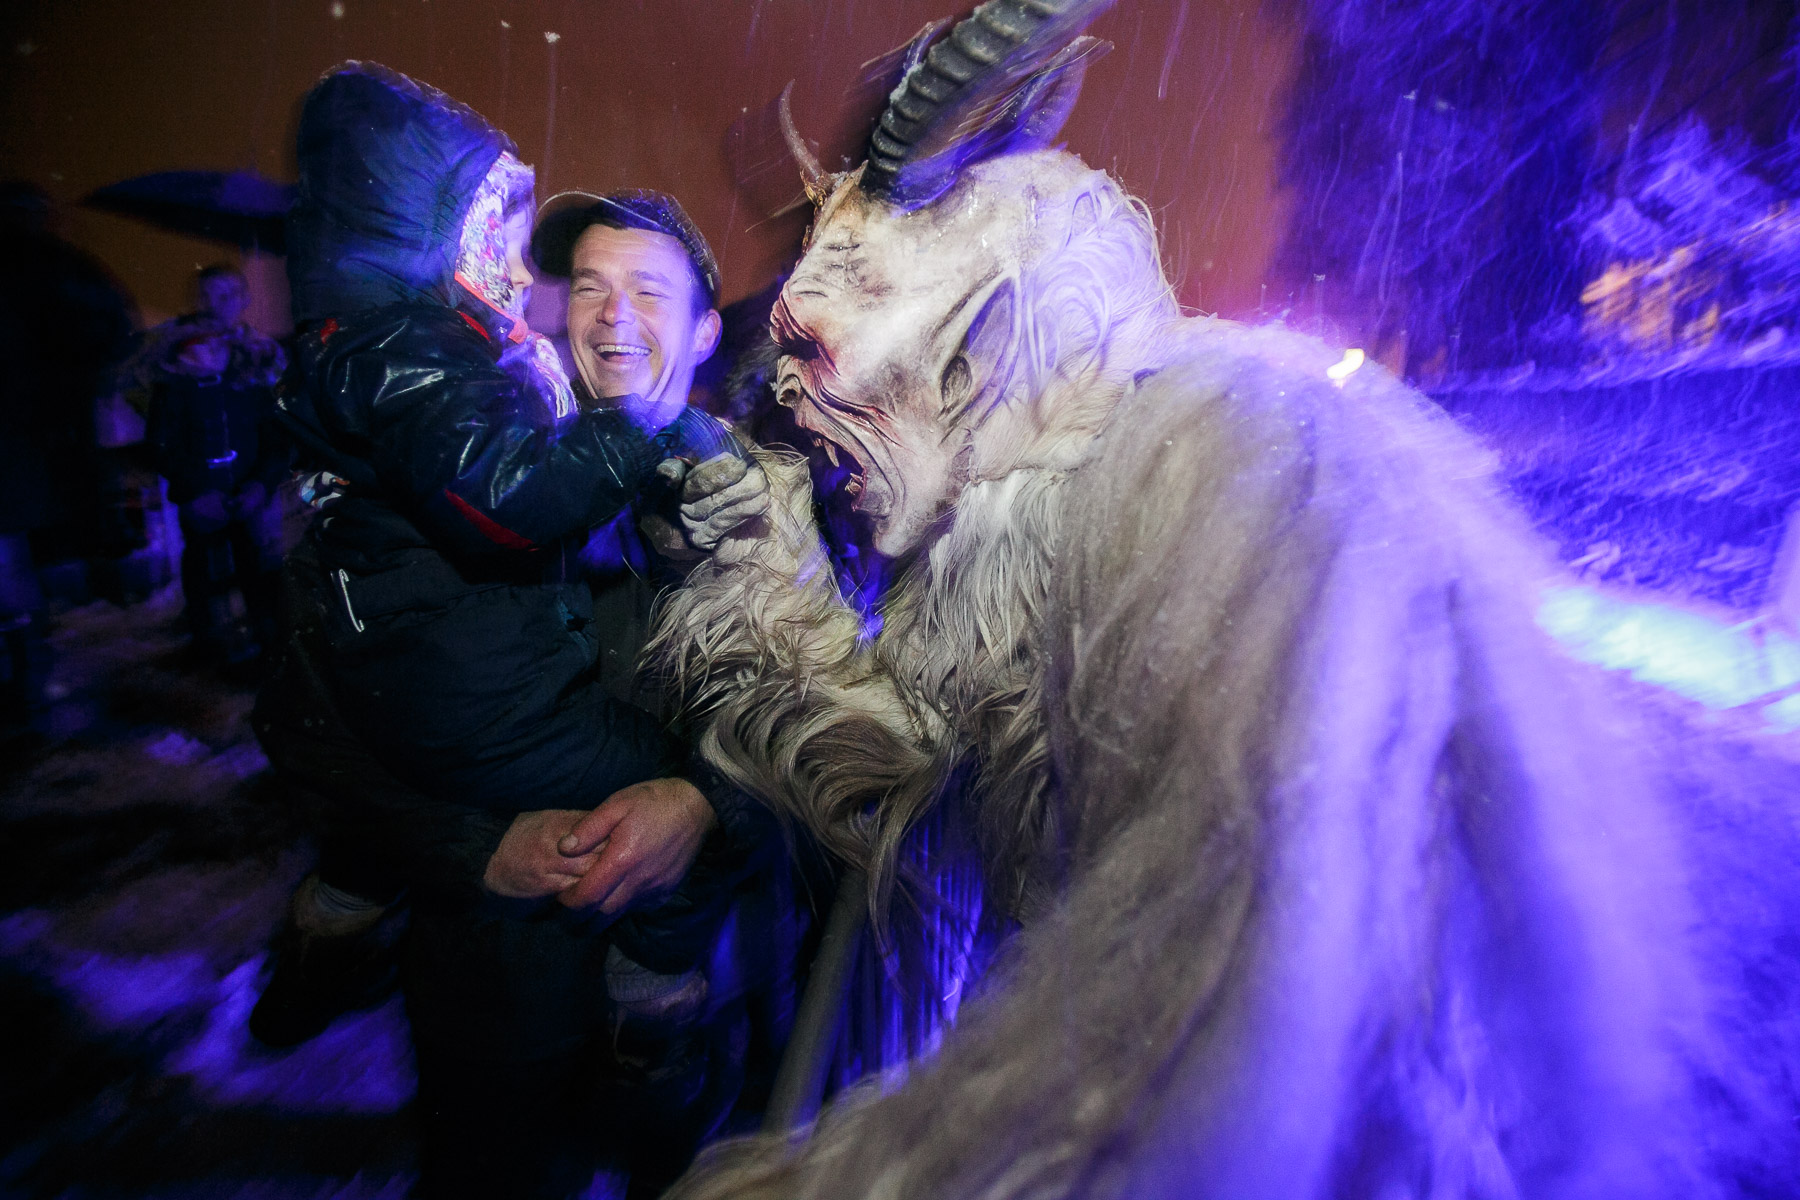 A participant dressed as the Krampus creature greets a child during the Krampus gathering in Goricane, Slovenia, Nov. 21, 2015. In Central European alpine folklore, Krampus is a demonic creature traditionally following St. Nicholas and angels on the evening of December 5. It pries on children who were not good during the year.